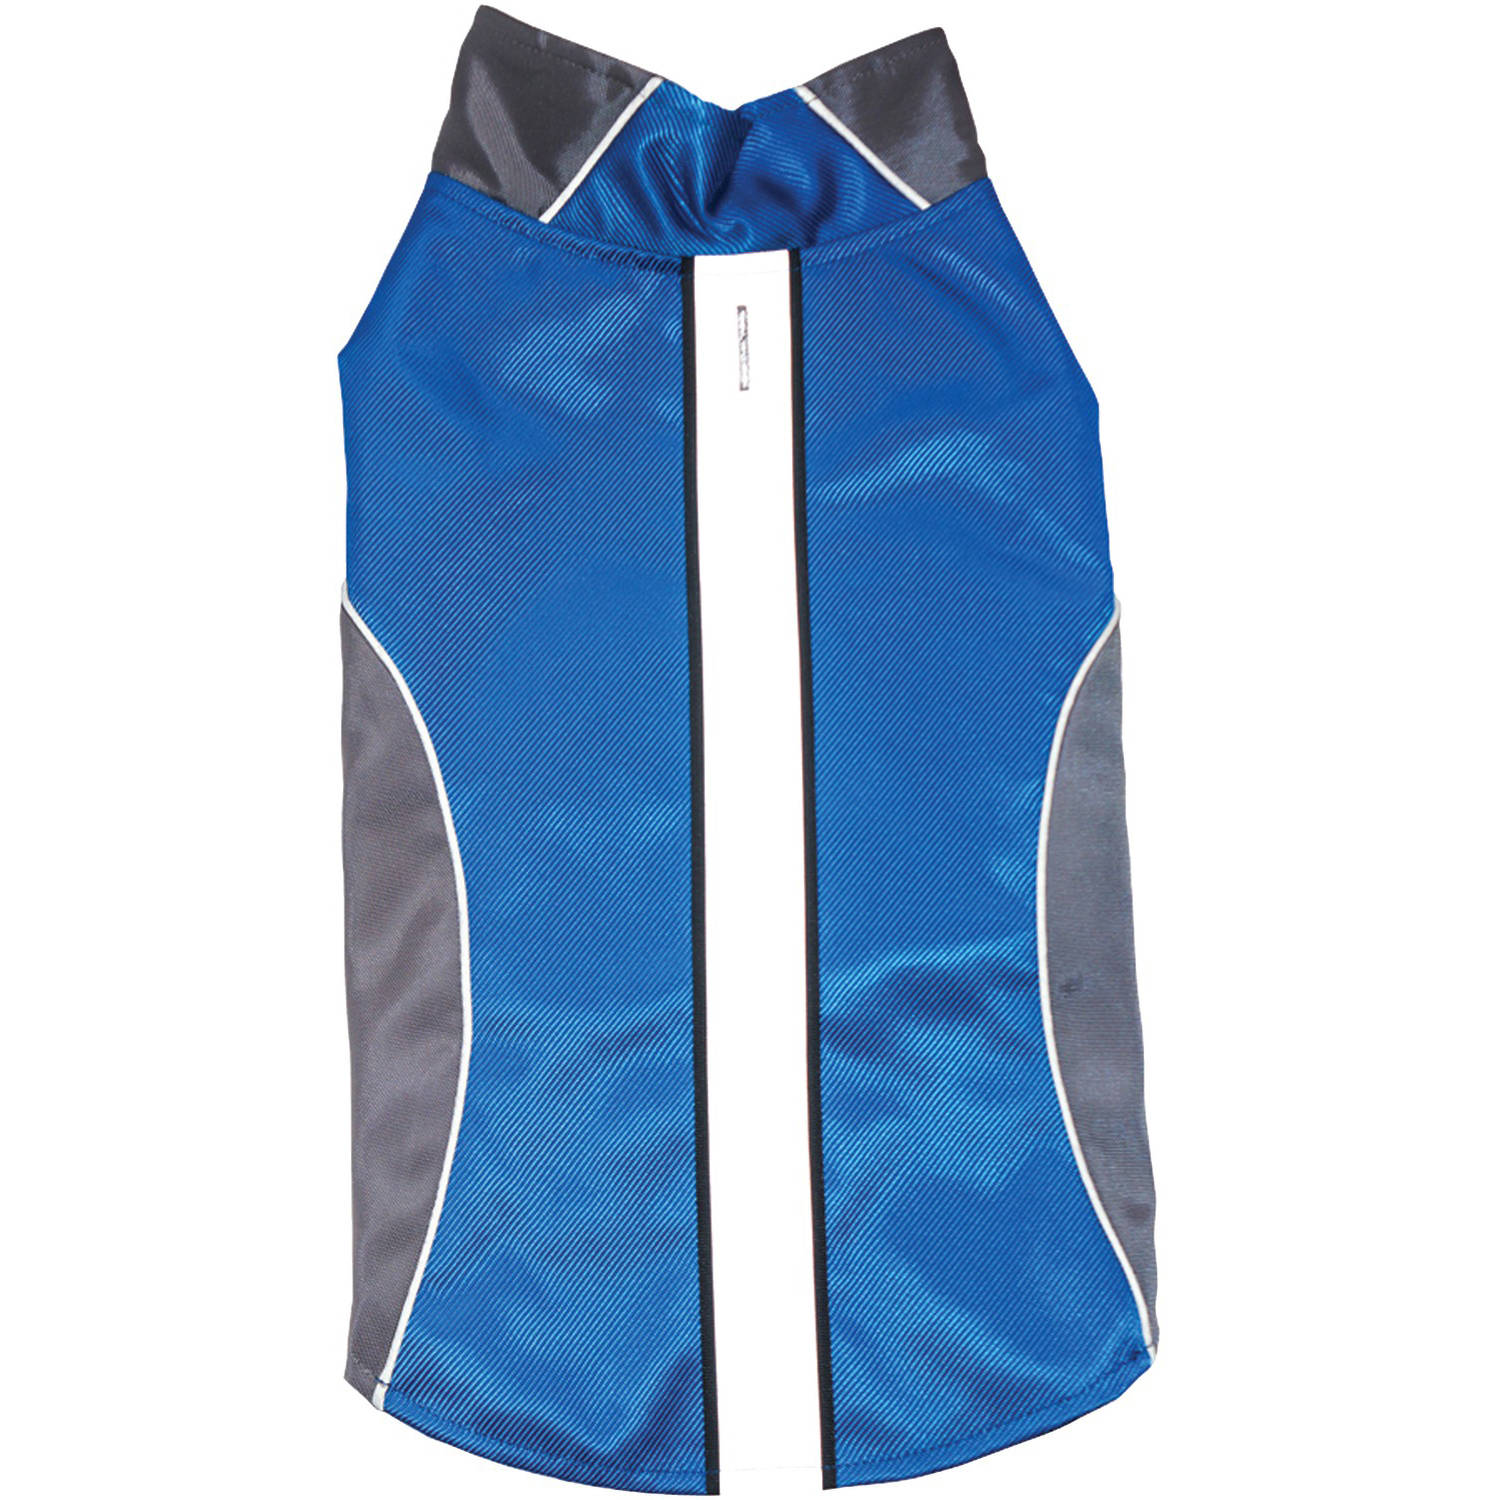 Royal Animals Water-Resistant Dog Raincoat with Reflective Stripes, Blue